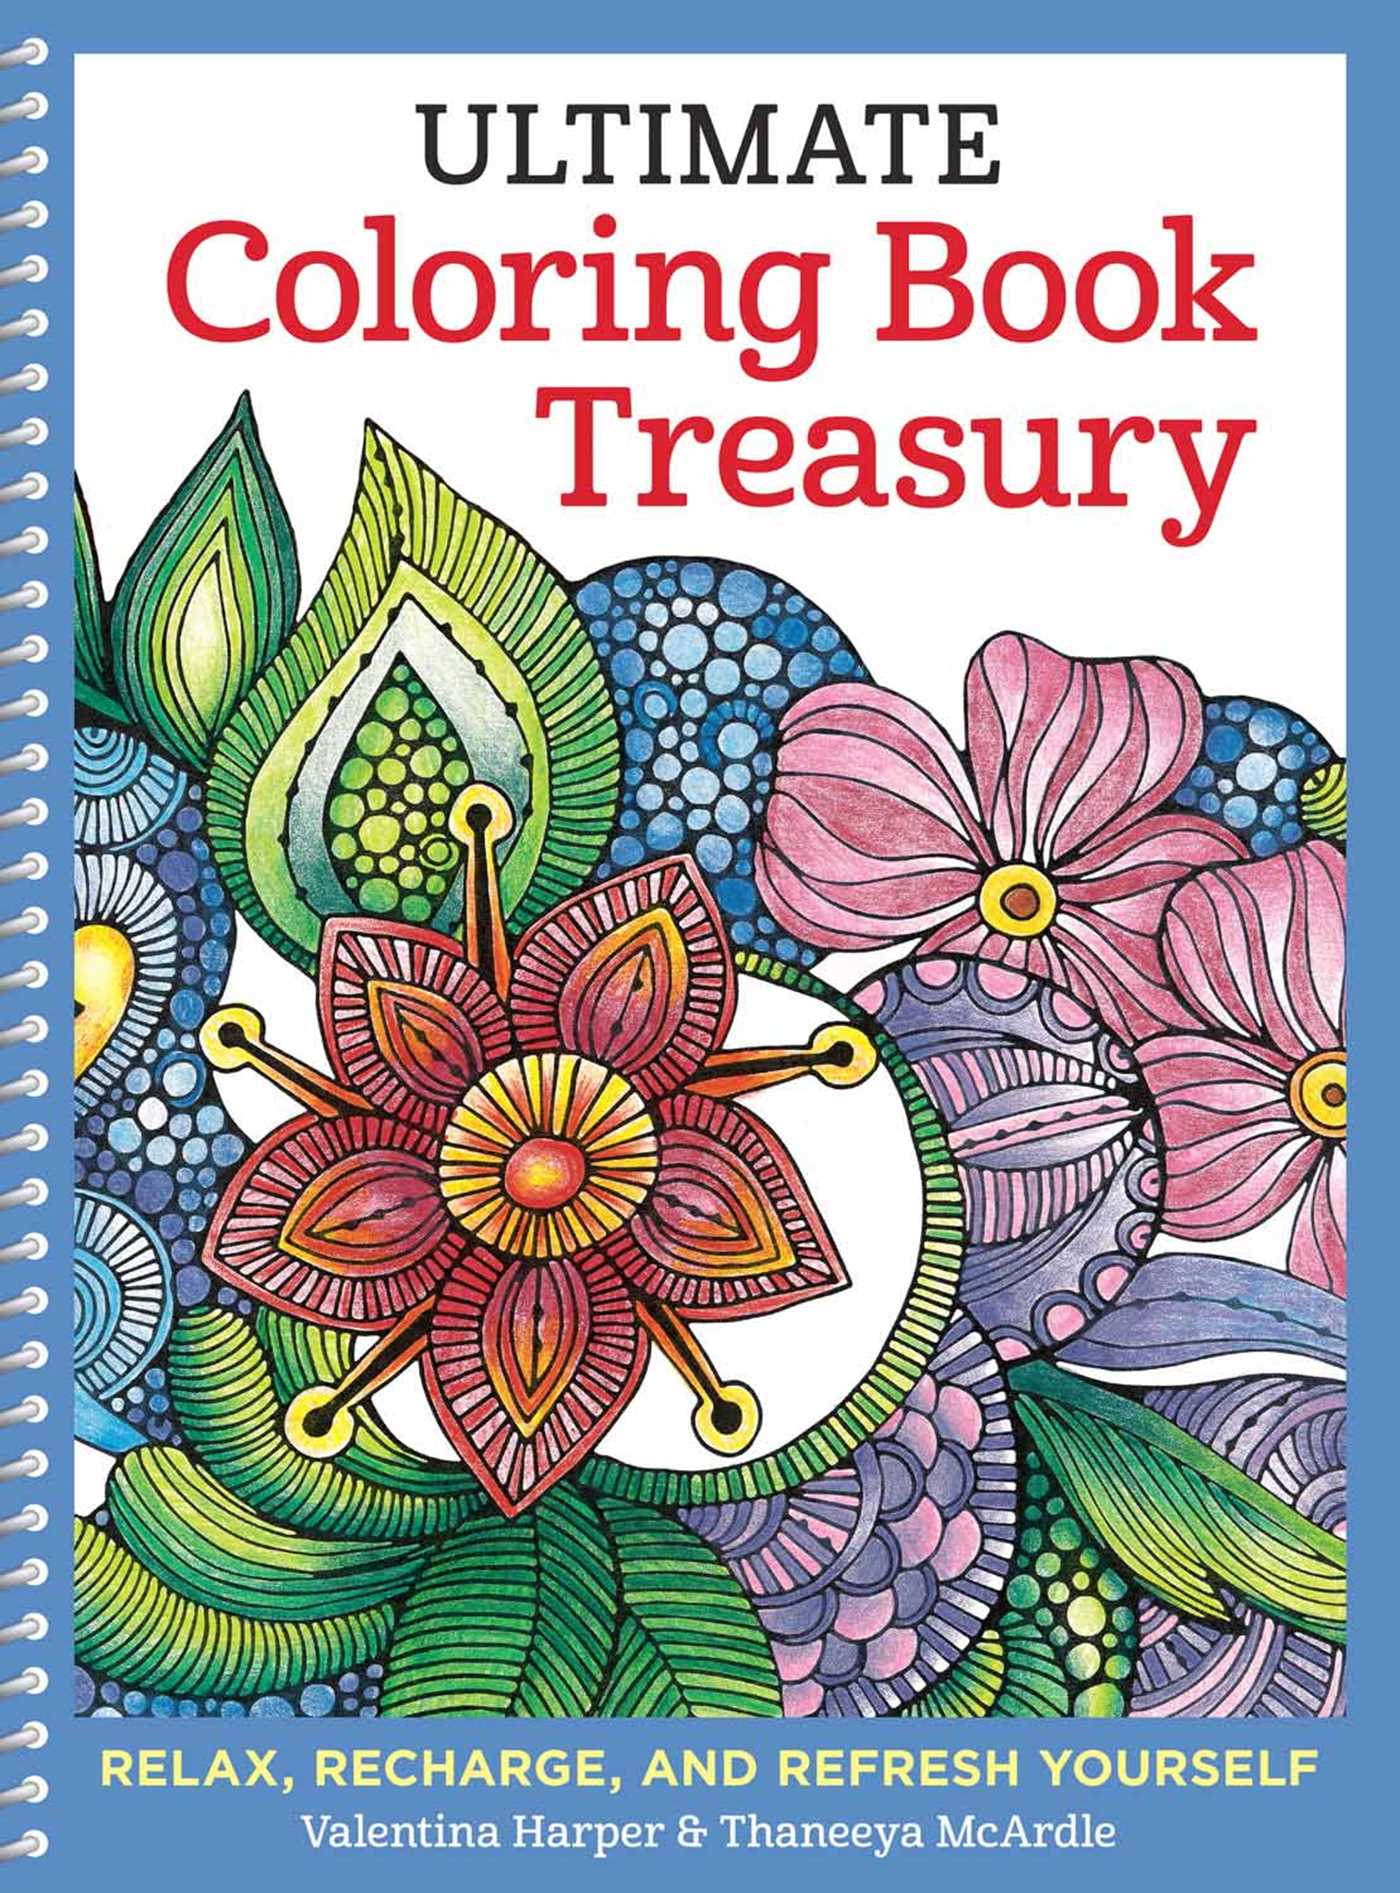 Colourtation anti stress colouring book for adults volume 1 - Colourtation Anti Stress Colouring Book For Adults Volume 1